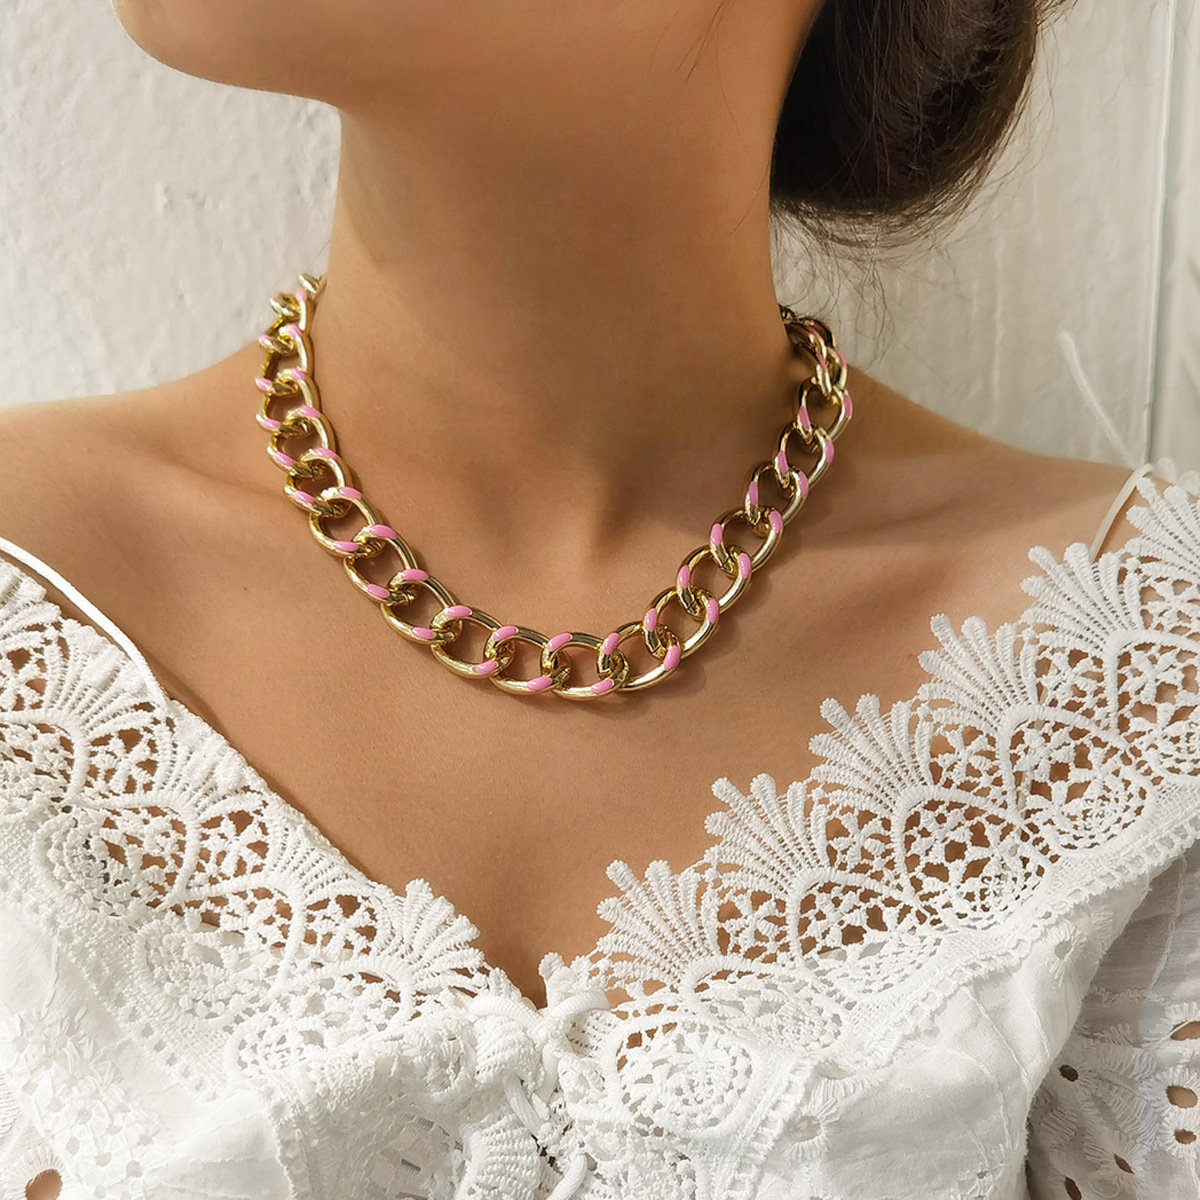 fashion simple illusion geometric wild clavicle chain necklace for women NHXR248184